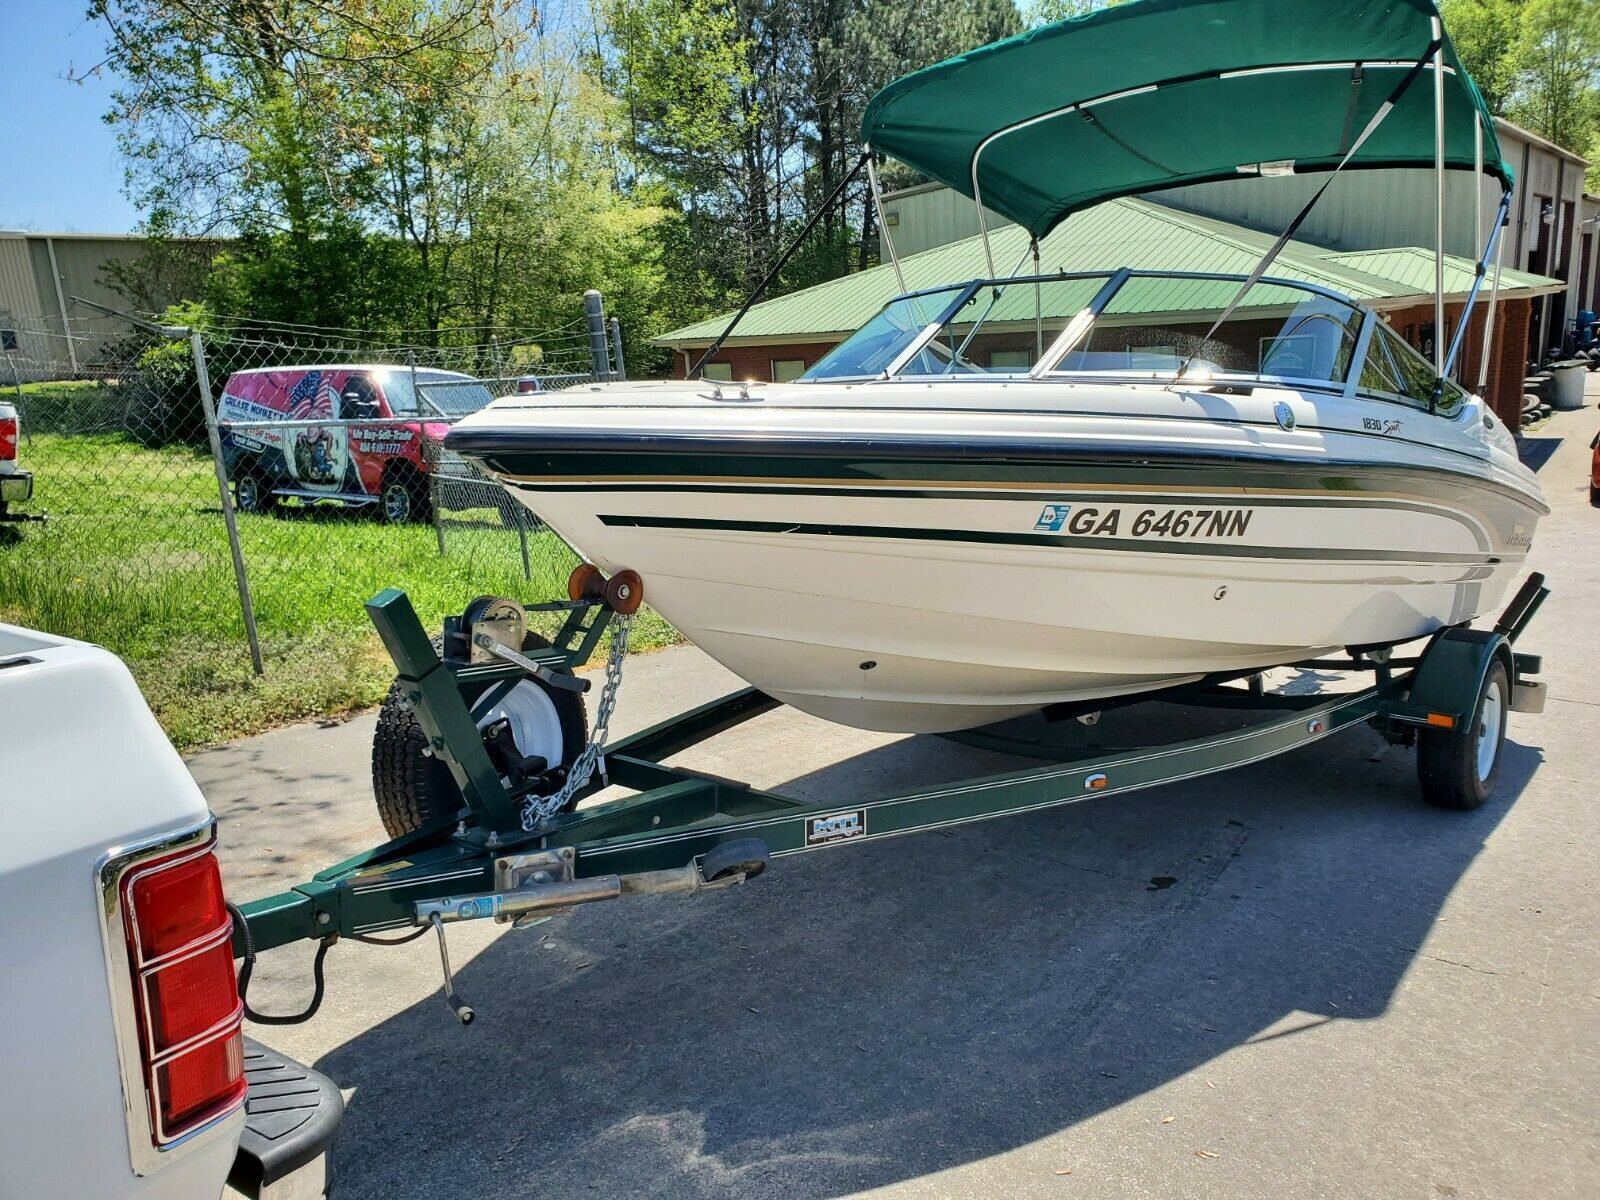 1999 Chaparral 20' bow rider with MTI trailer, EXTRAS Bayliner, SEA RAY, NICE!!!